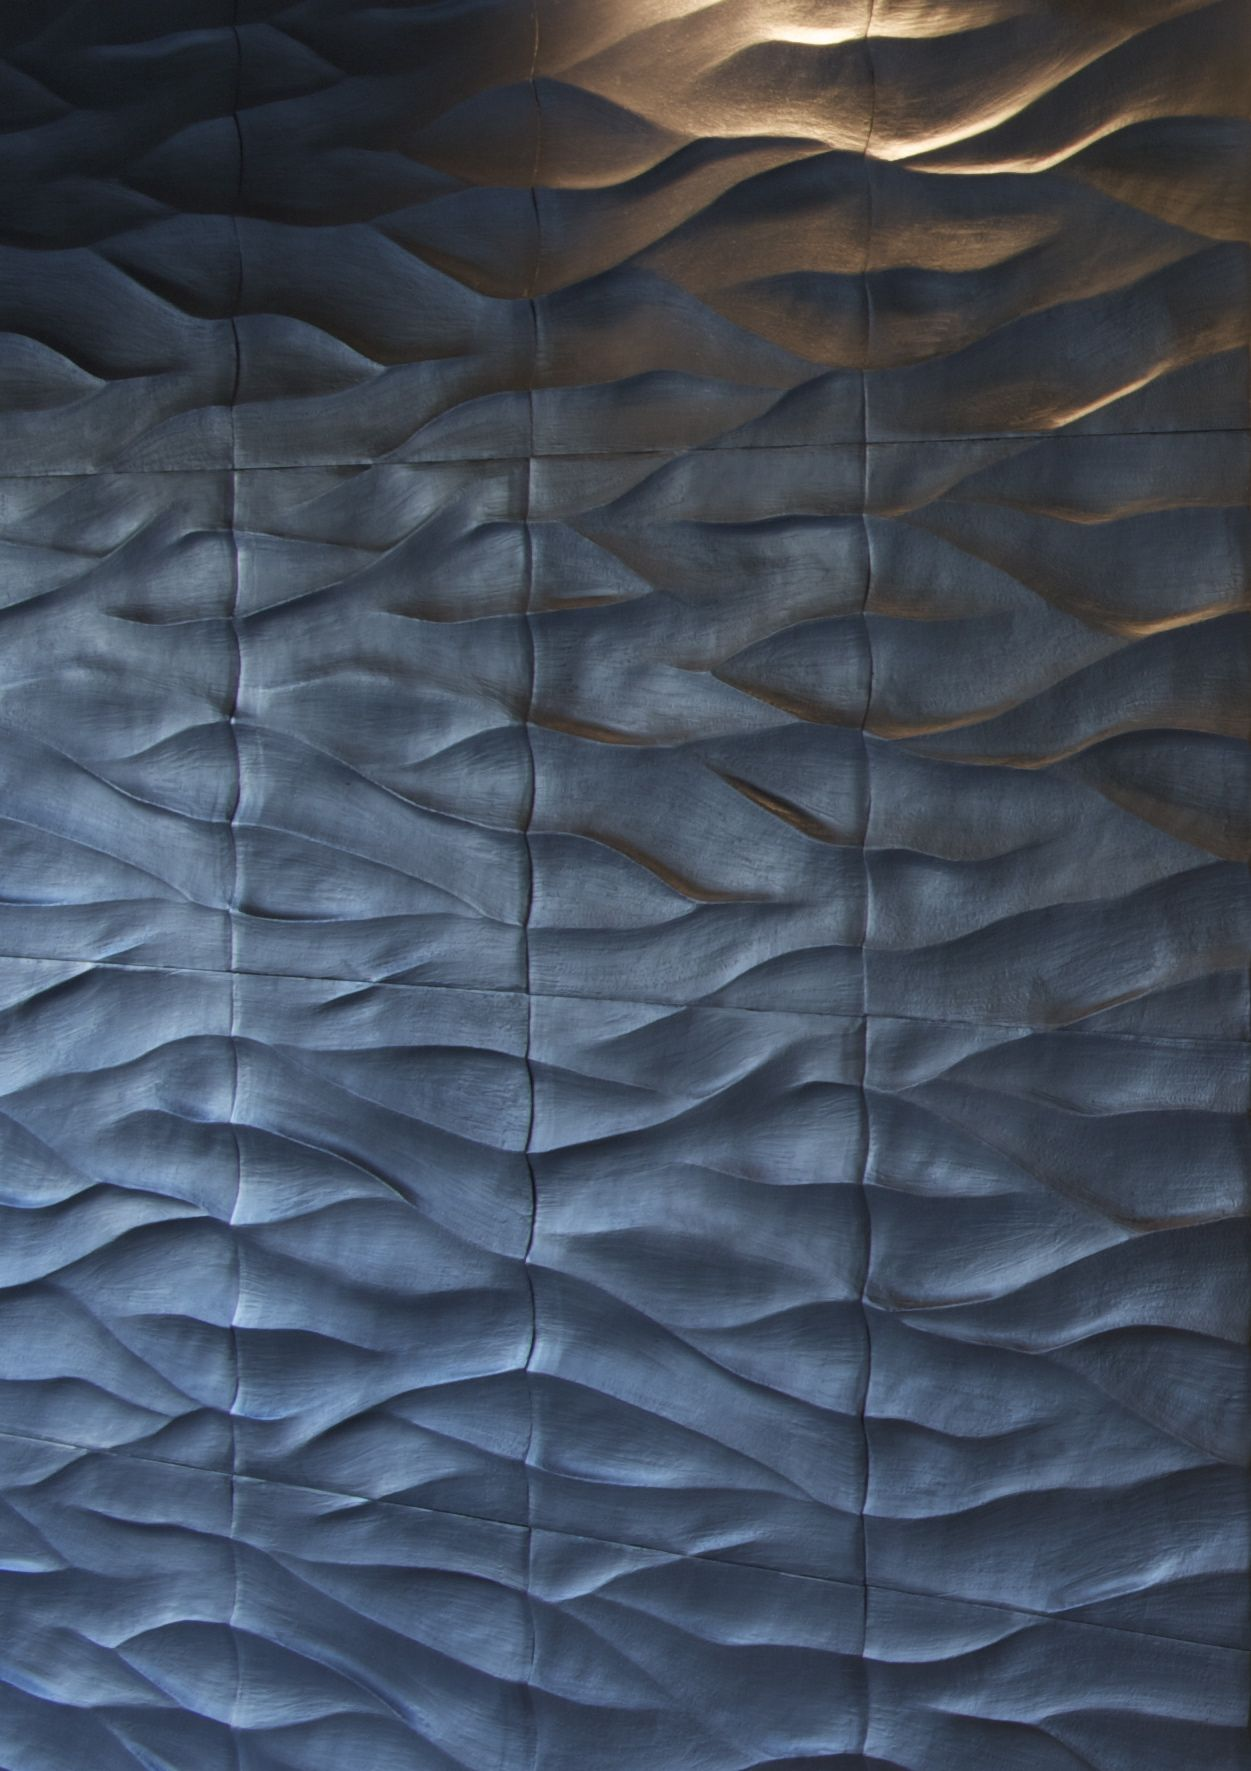 Boreal — Giovanni Barbieri | The House | Pinterest | Tile patterns ...